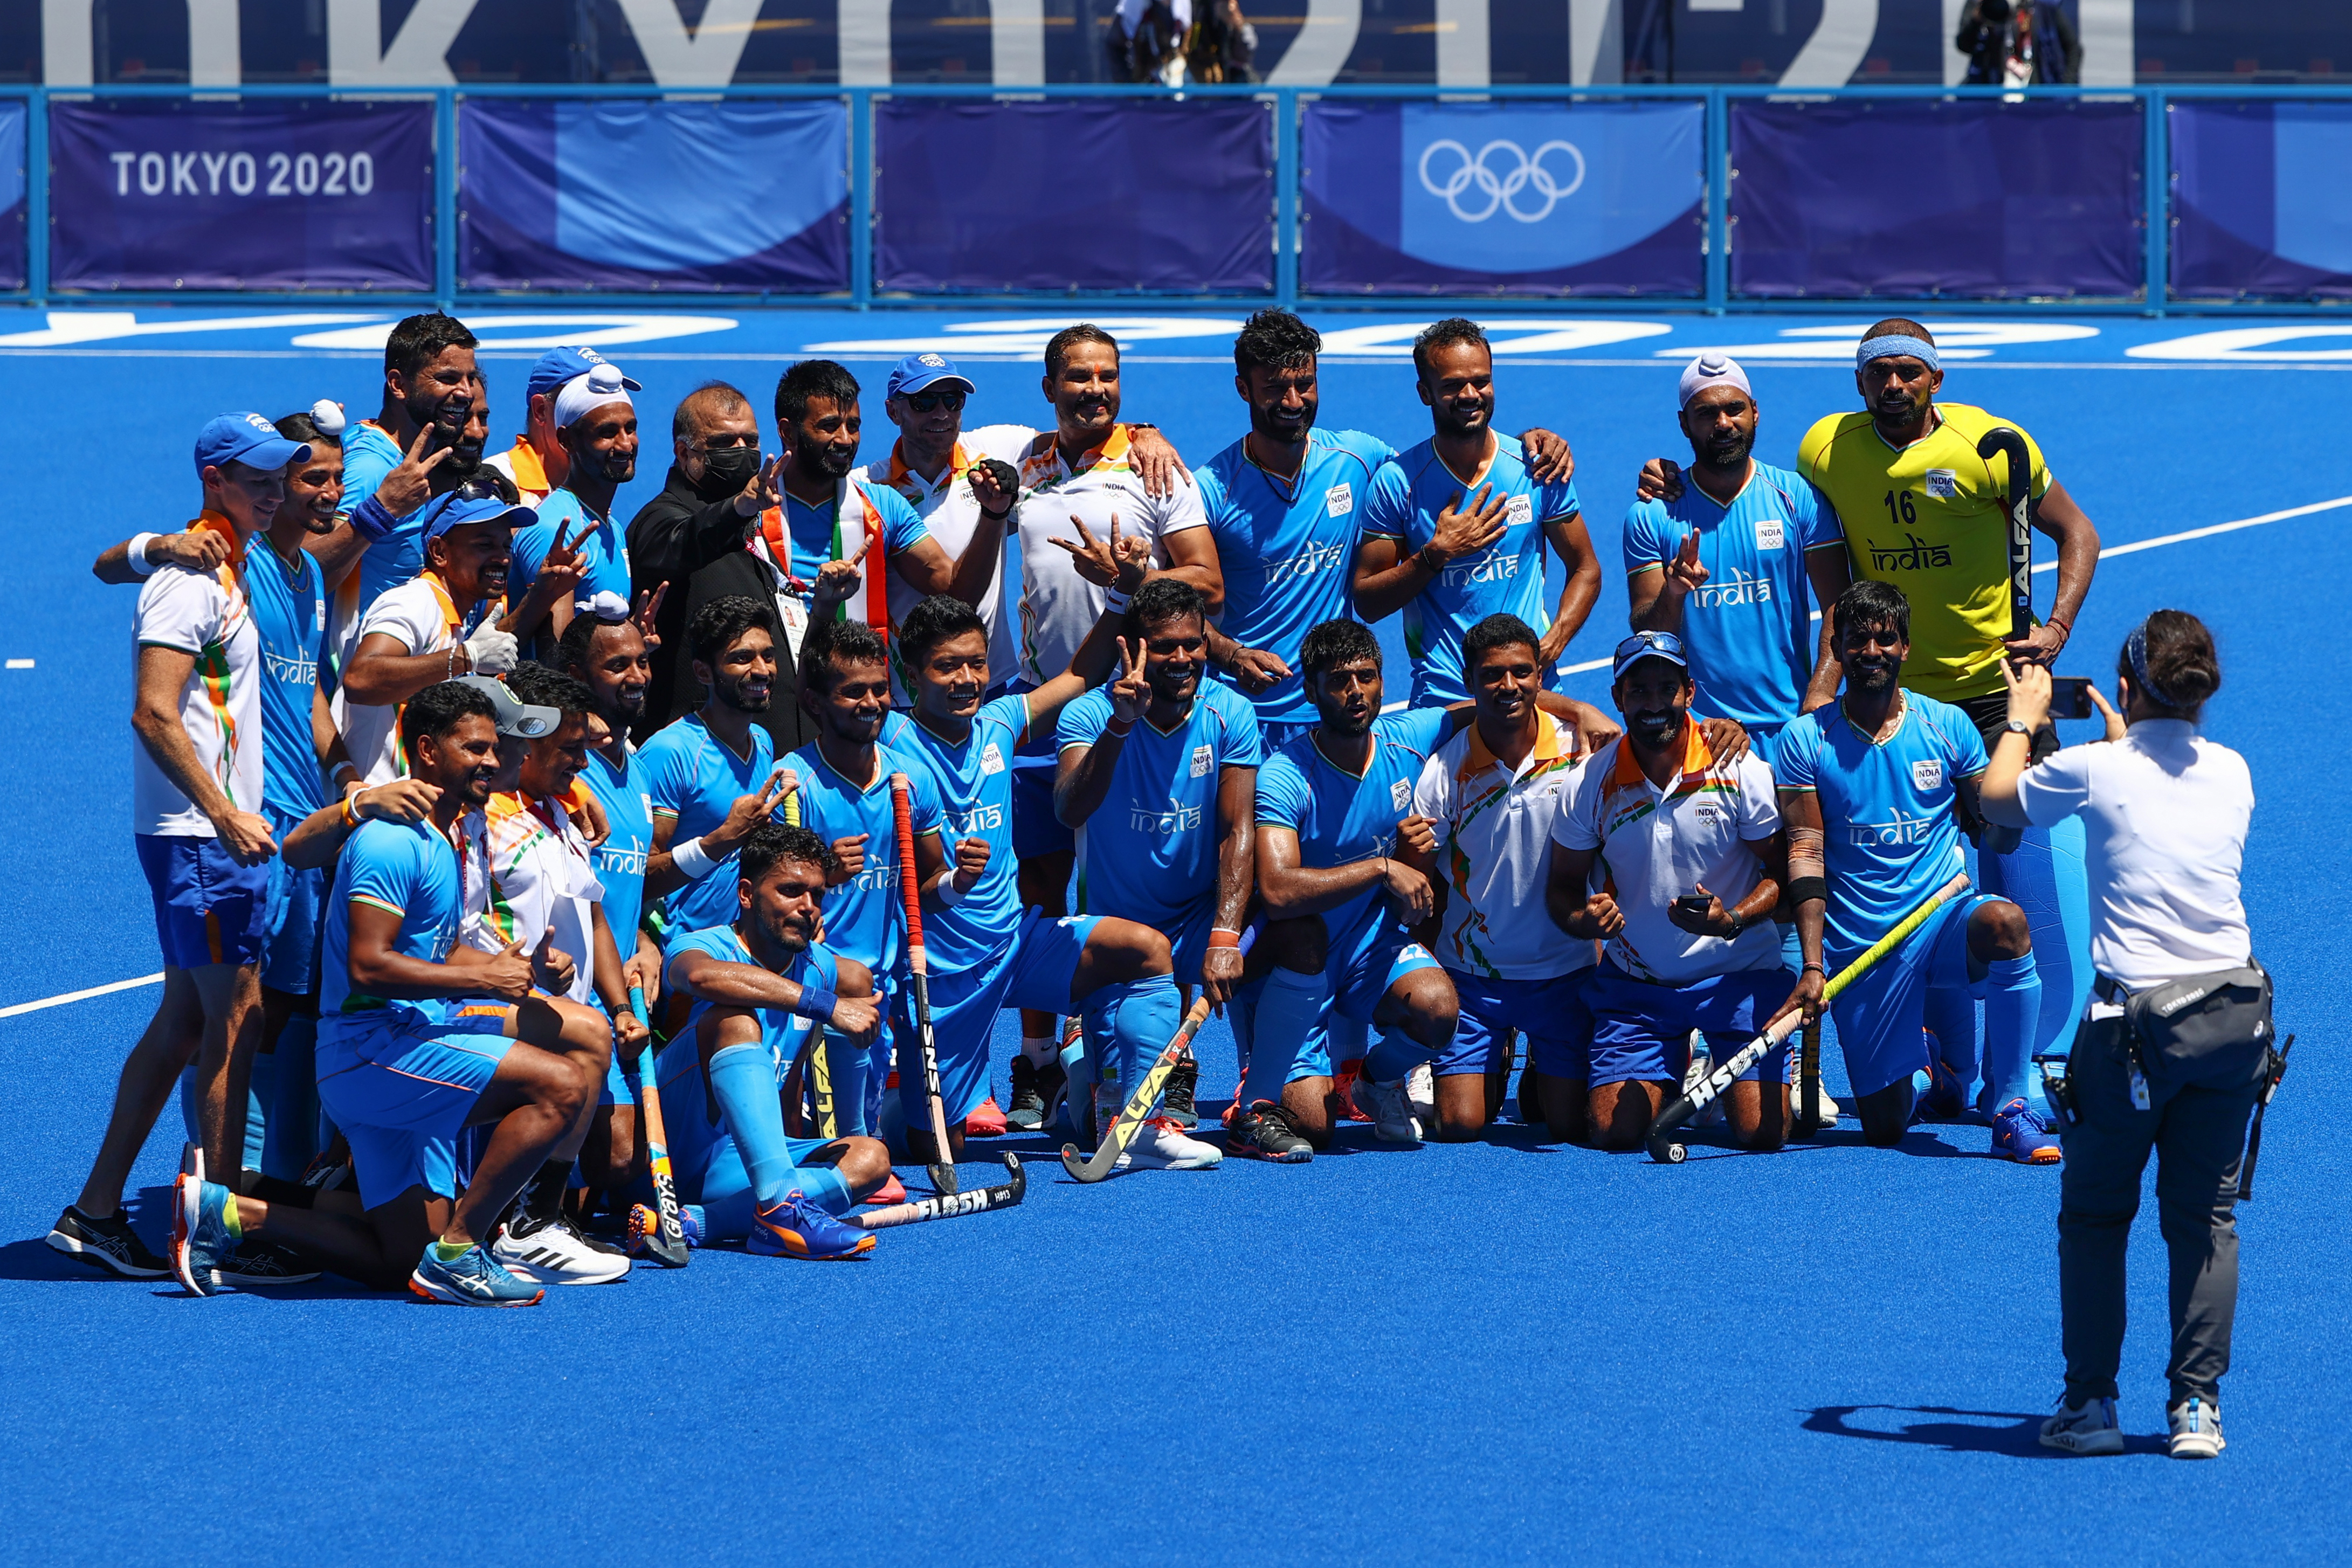 Hockey-India win bronze after dramatic victory over Germany | Reuters